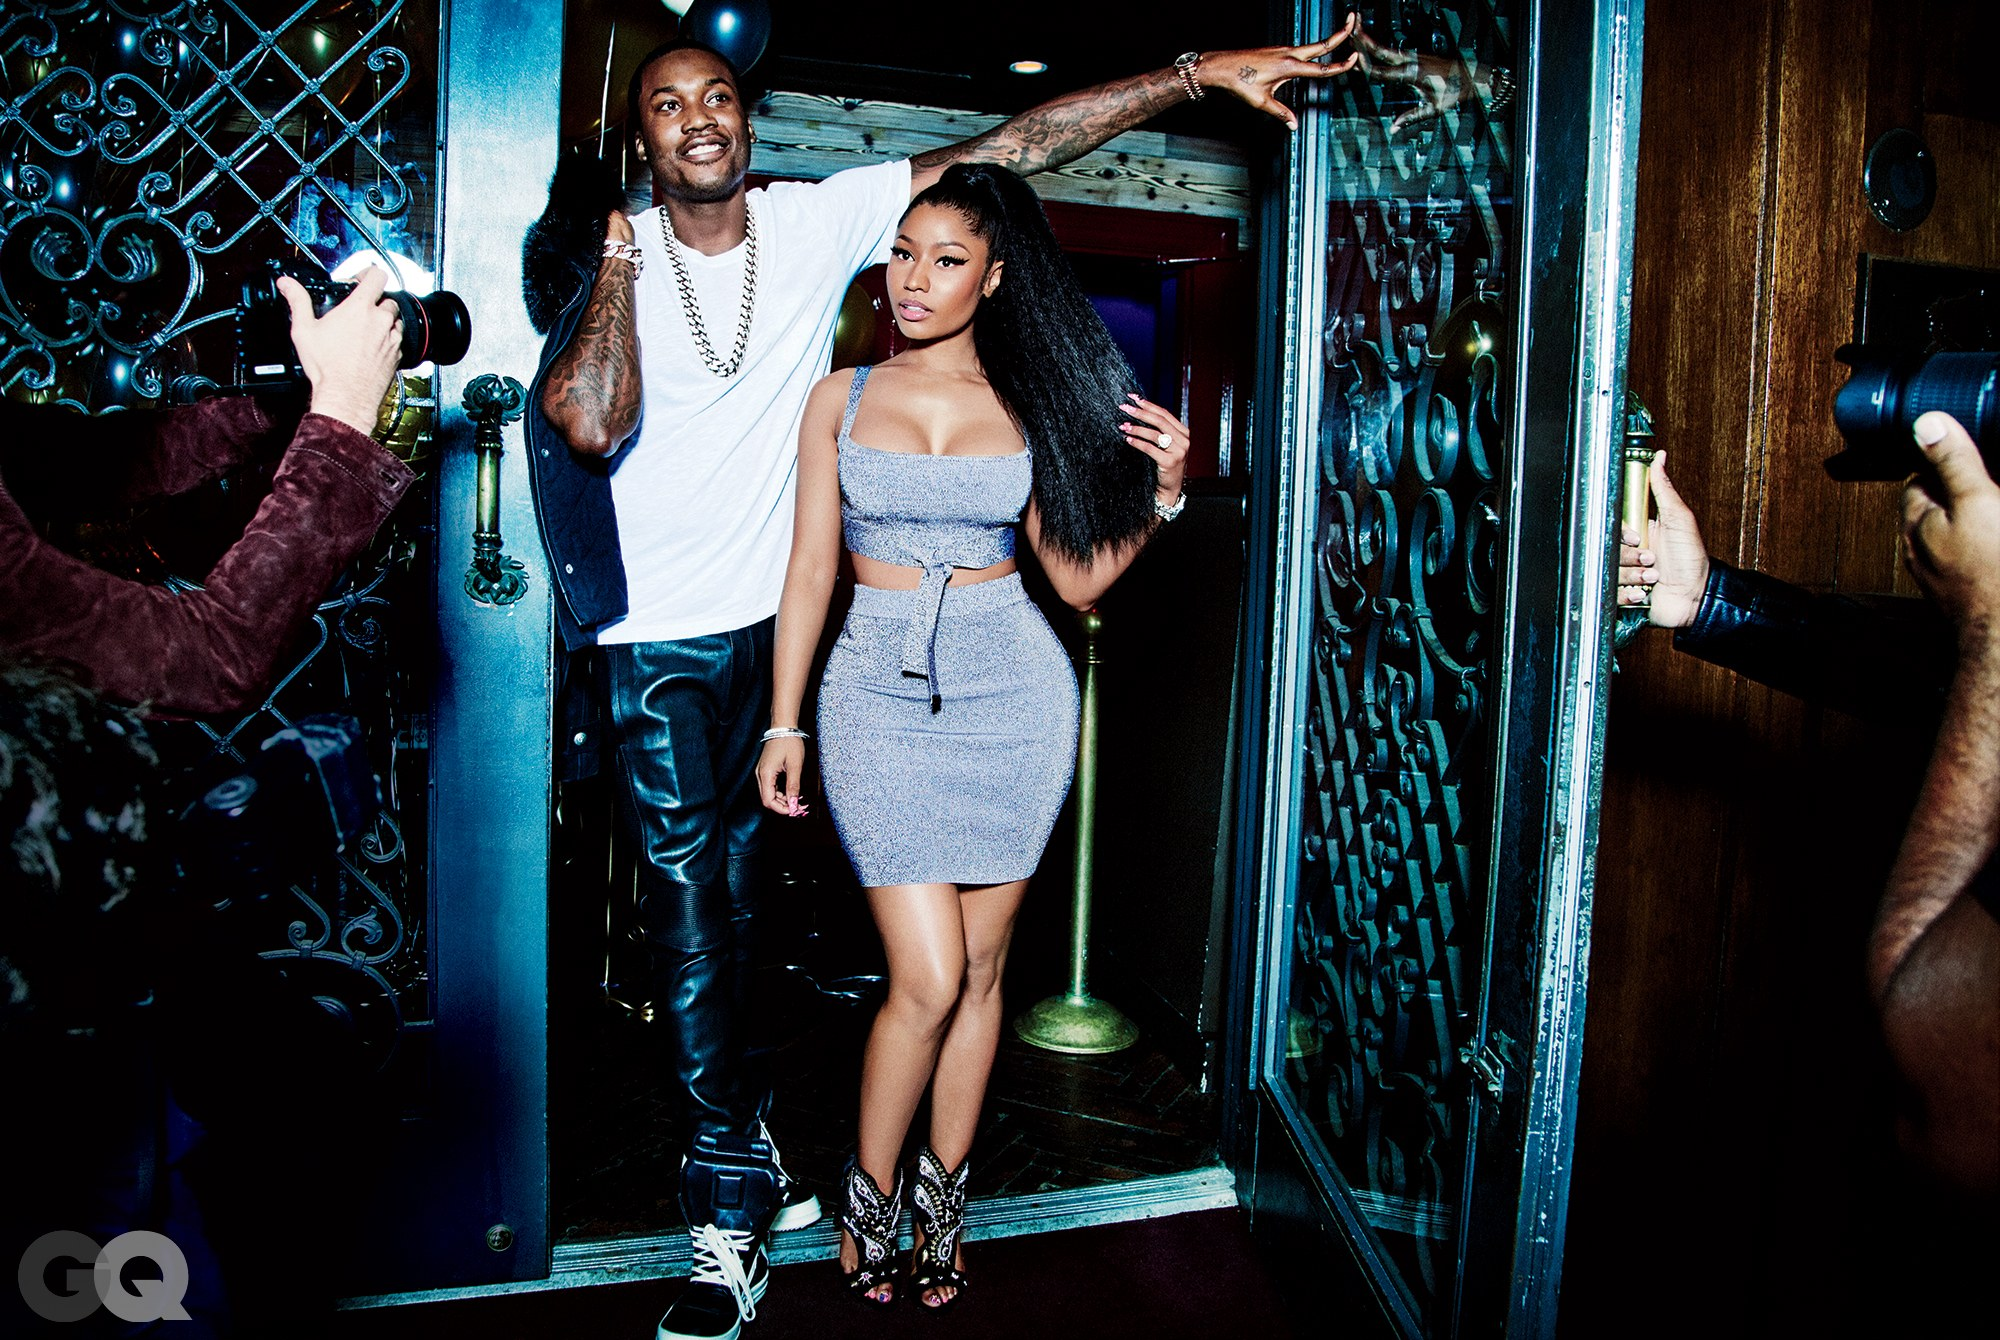 Nicki's a 4 with a 3 wing and Meek Mill is probably a 7